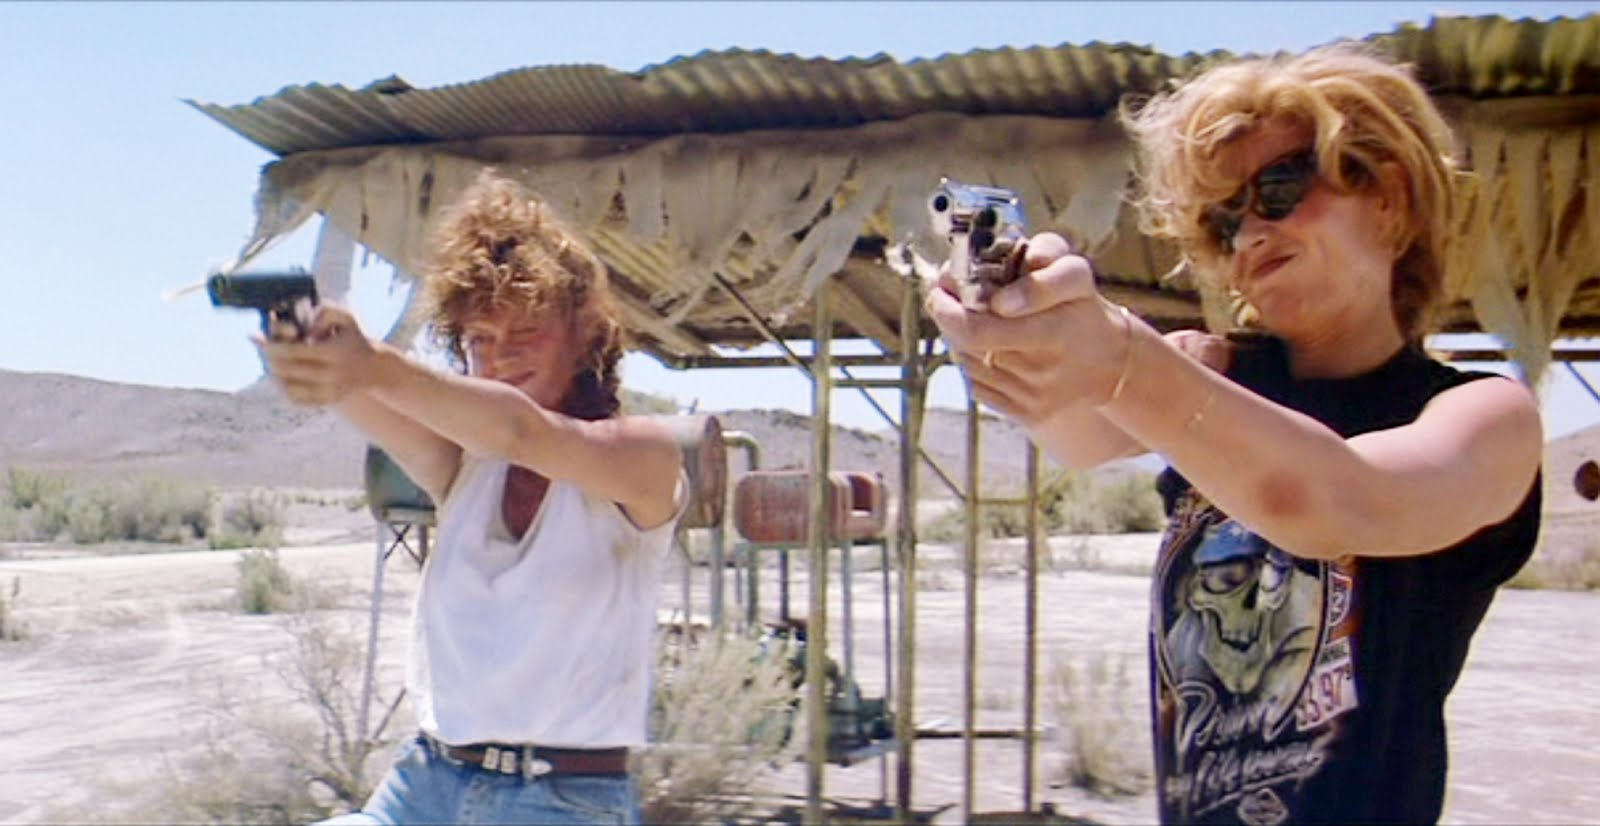 Thelma and Louise also...